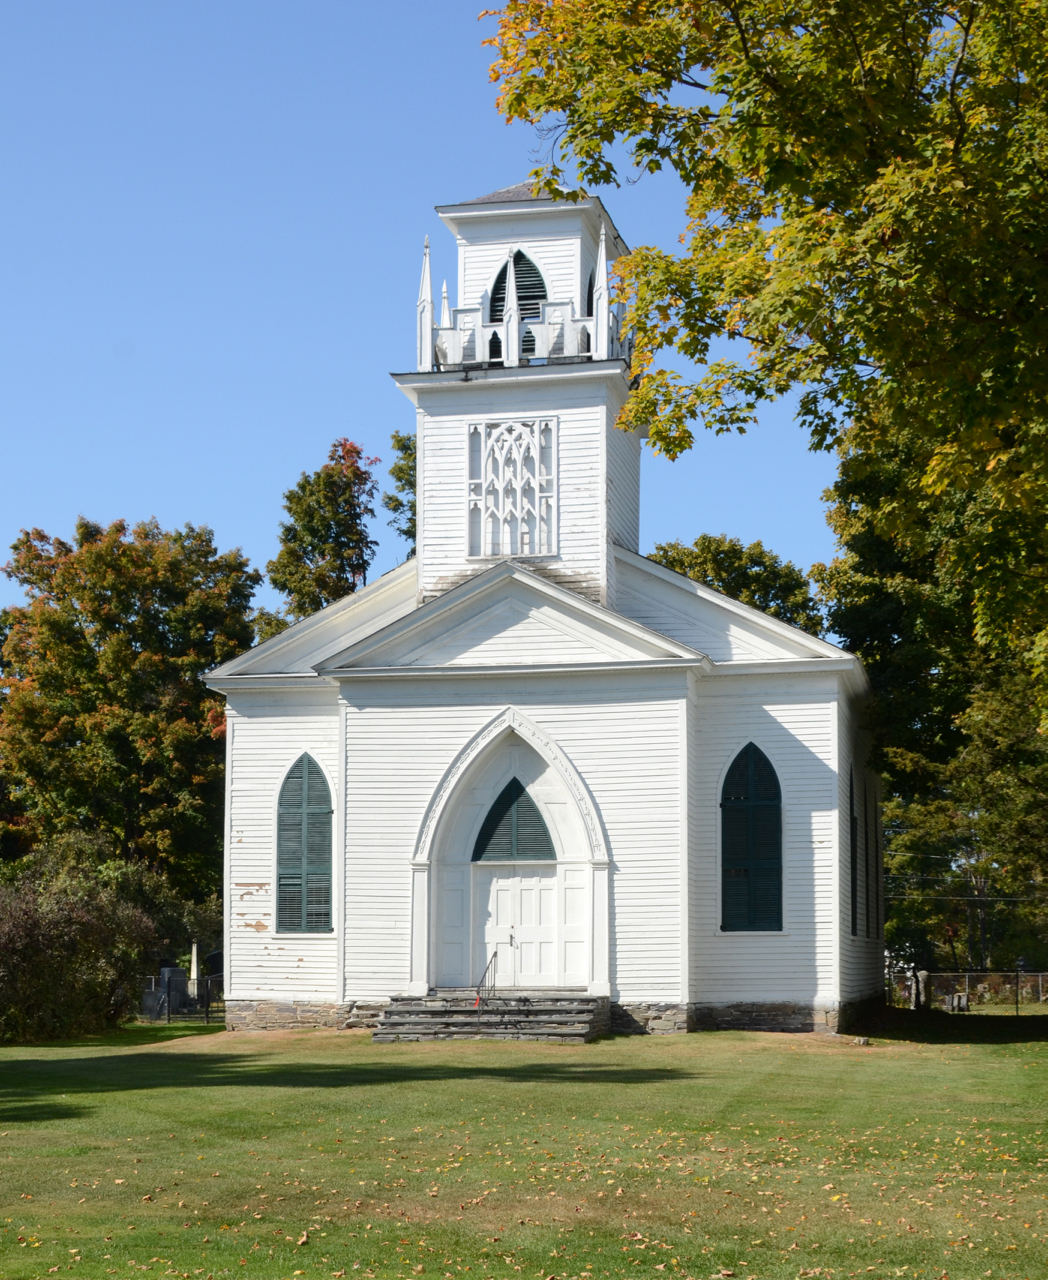 St. John's Church, East Poultney